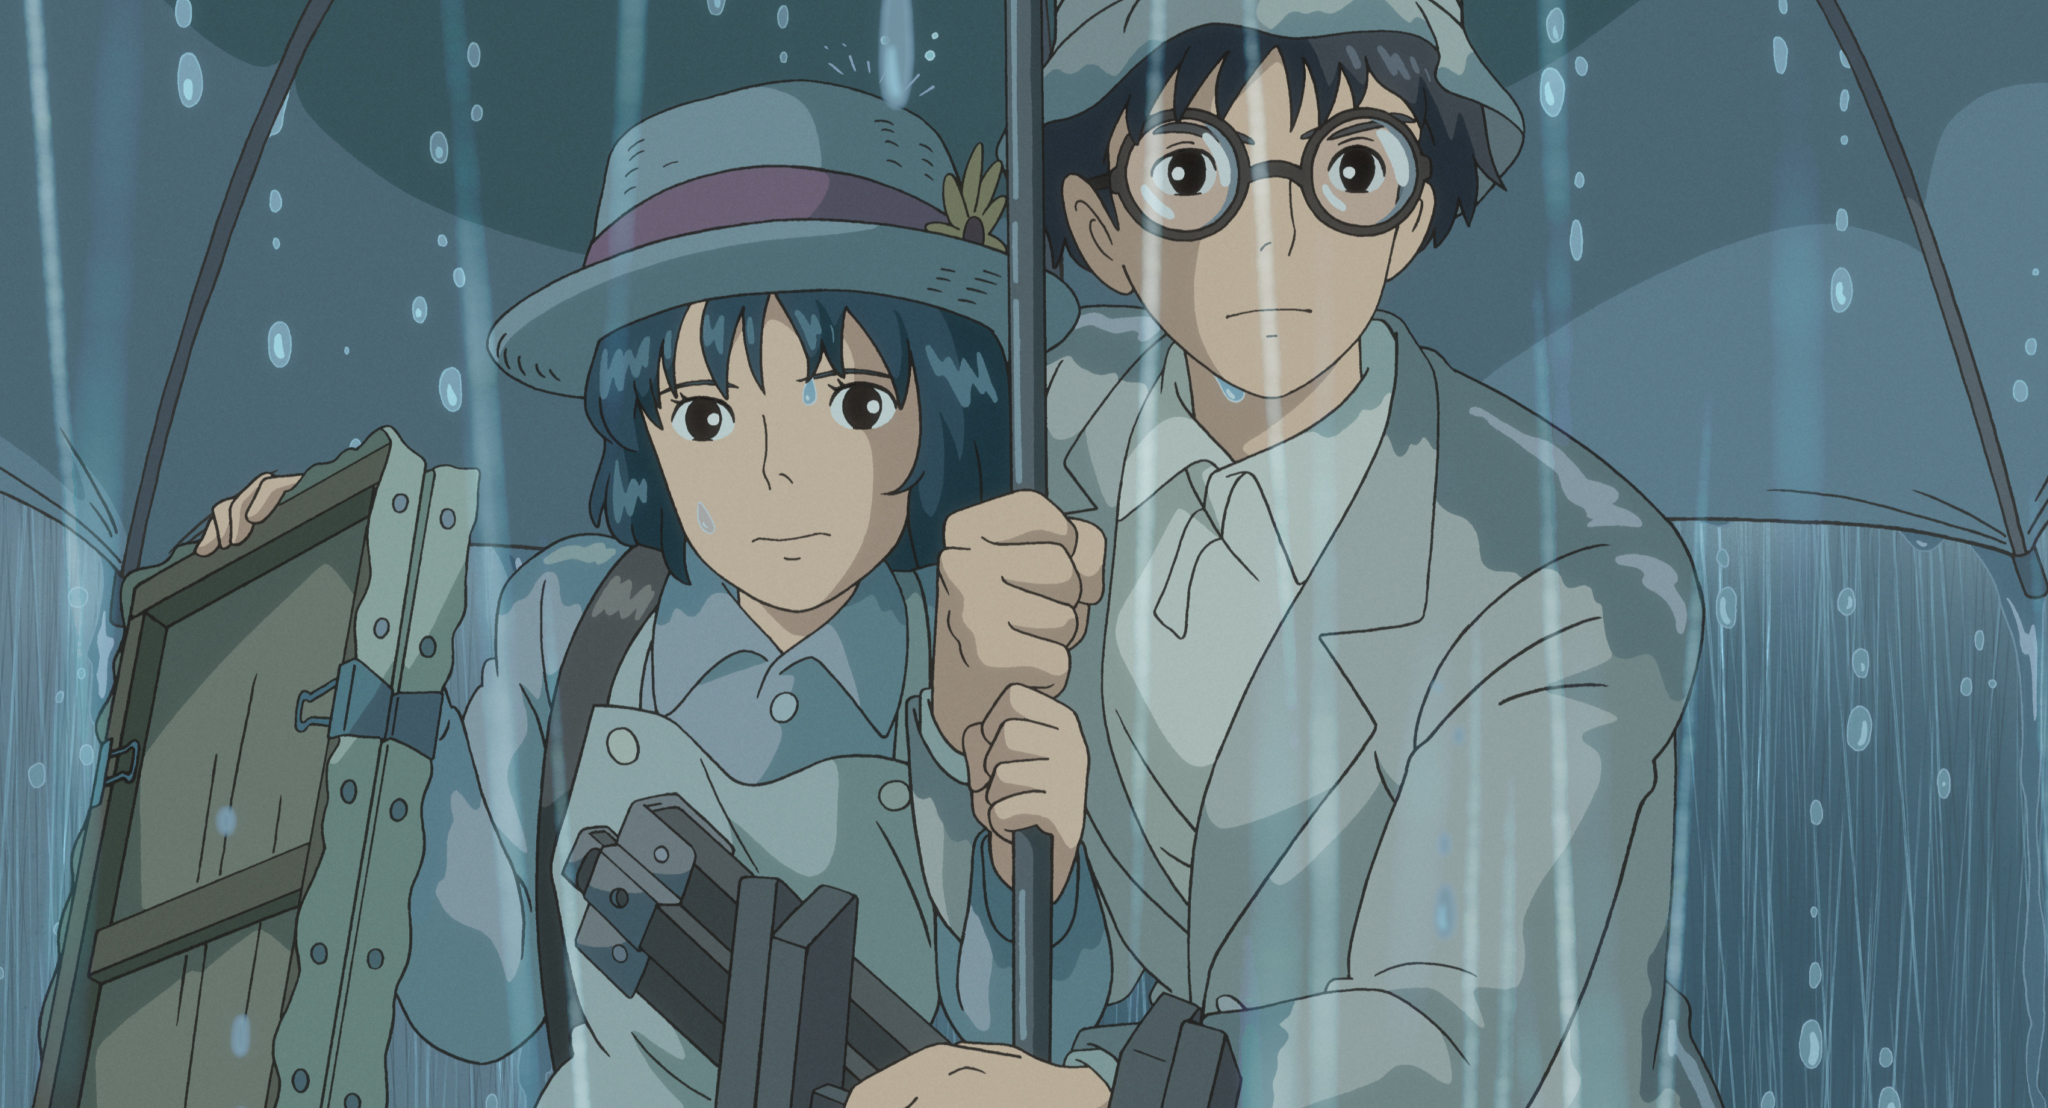 Jiro and Naoko in the Rain, promotional image from http://worldofentertainment.info/2014/03/09/pauls-review-of-the-wind-rises-2013/